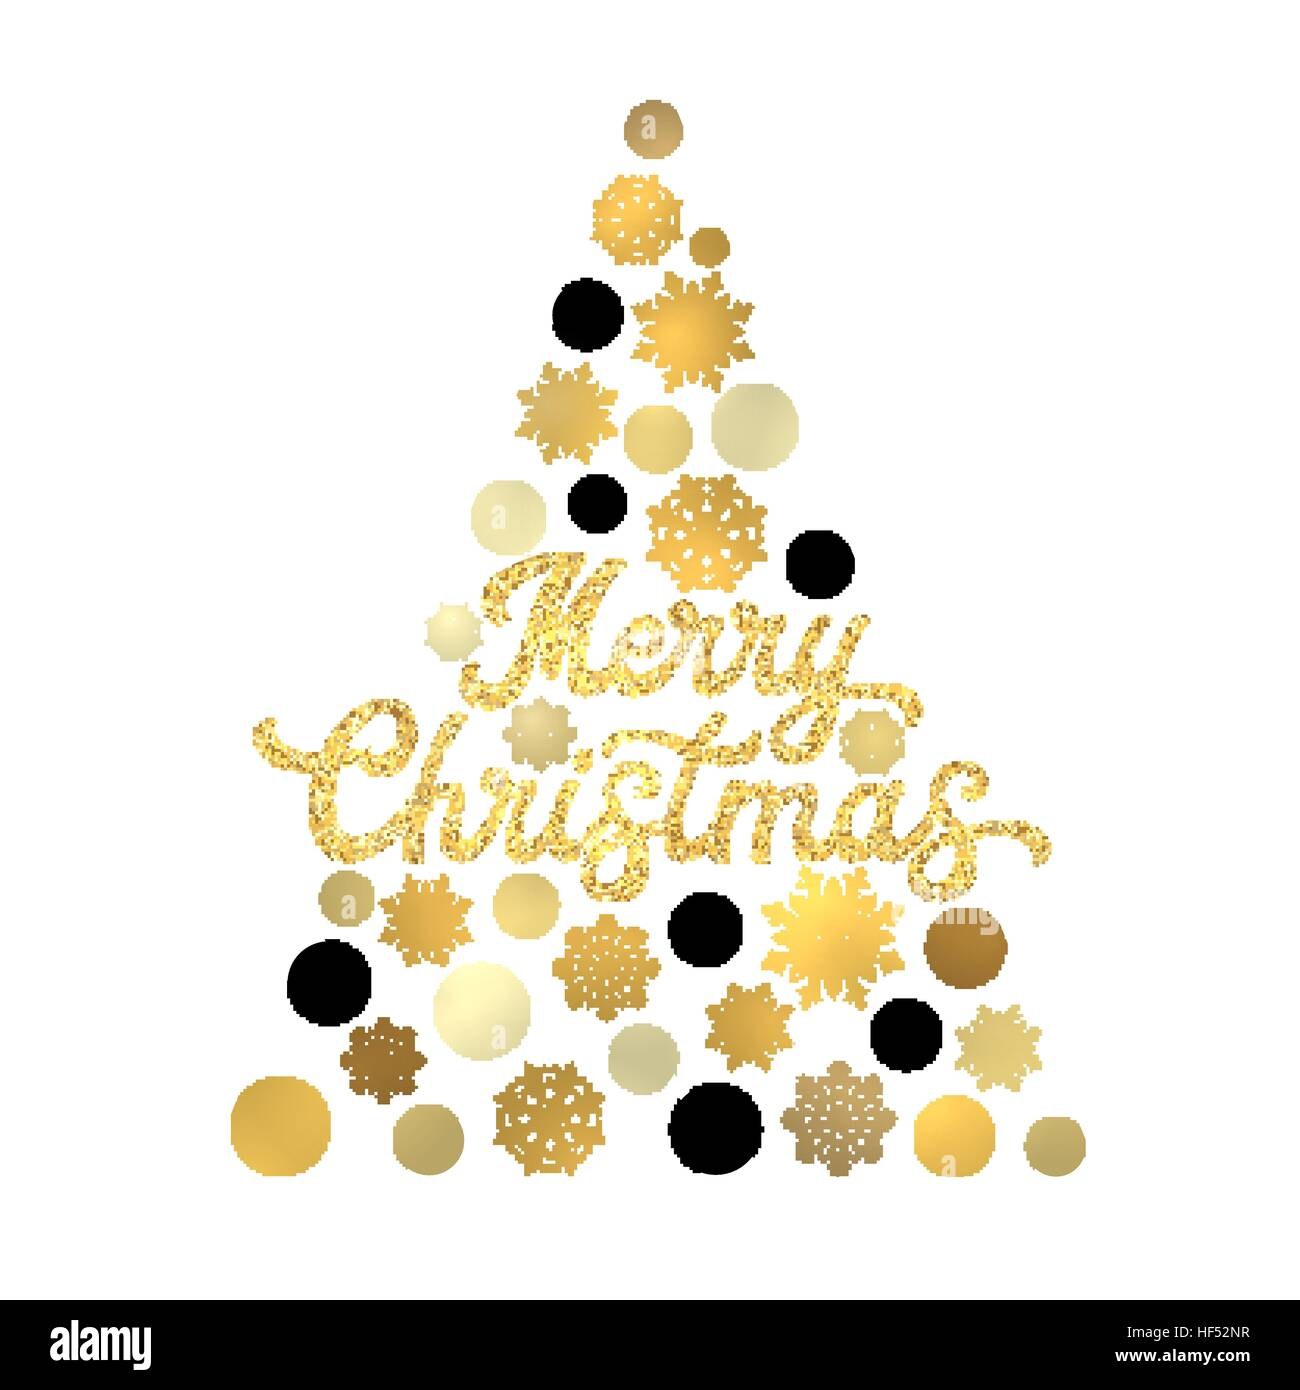 Christmas Tree Isolated On White Background With Gold Glittering Texture Hand Lettering Design Stylish Xmas Card Golden Circles And Snowflakes